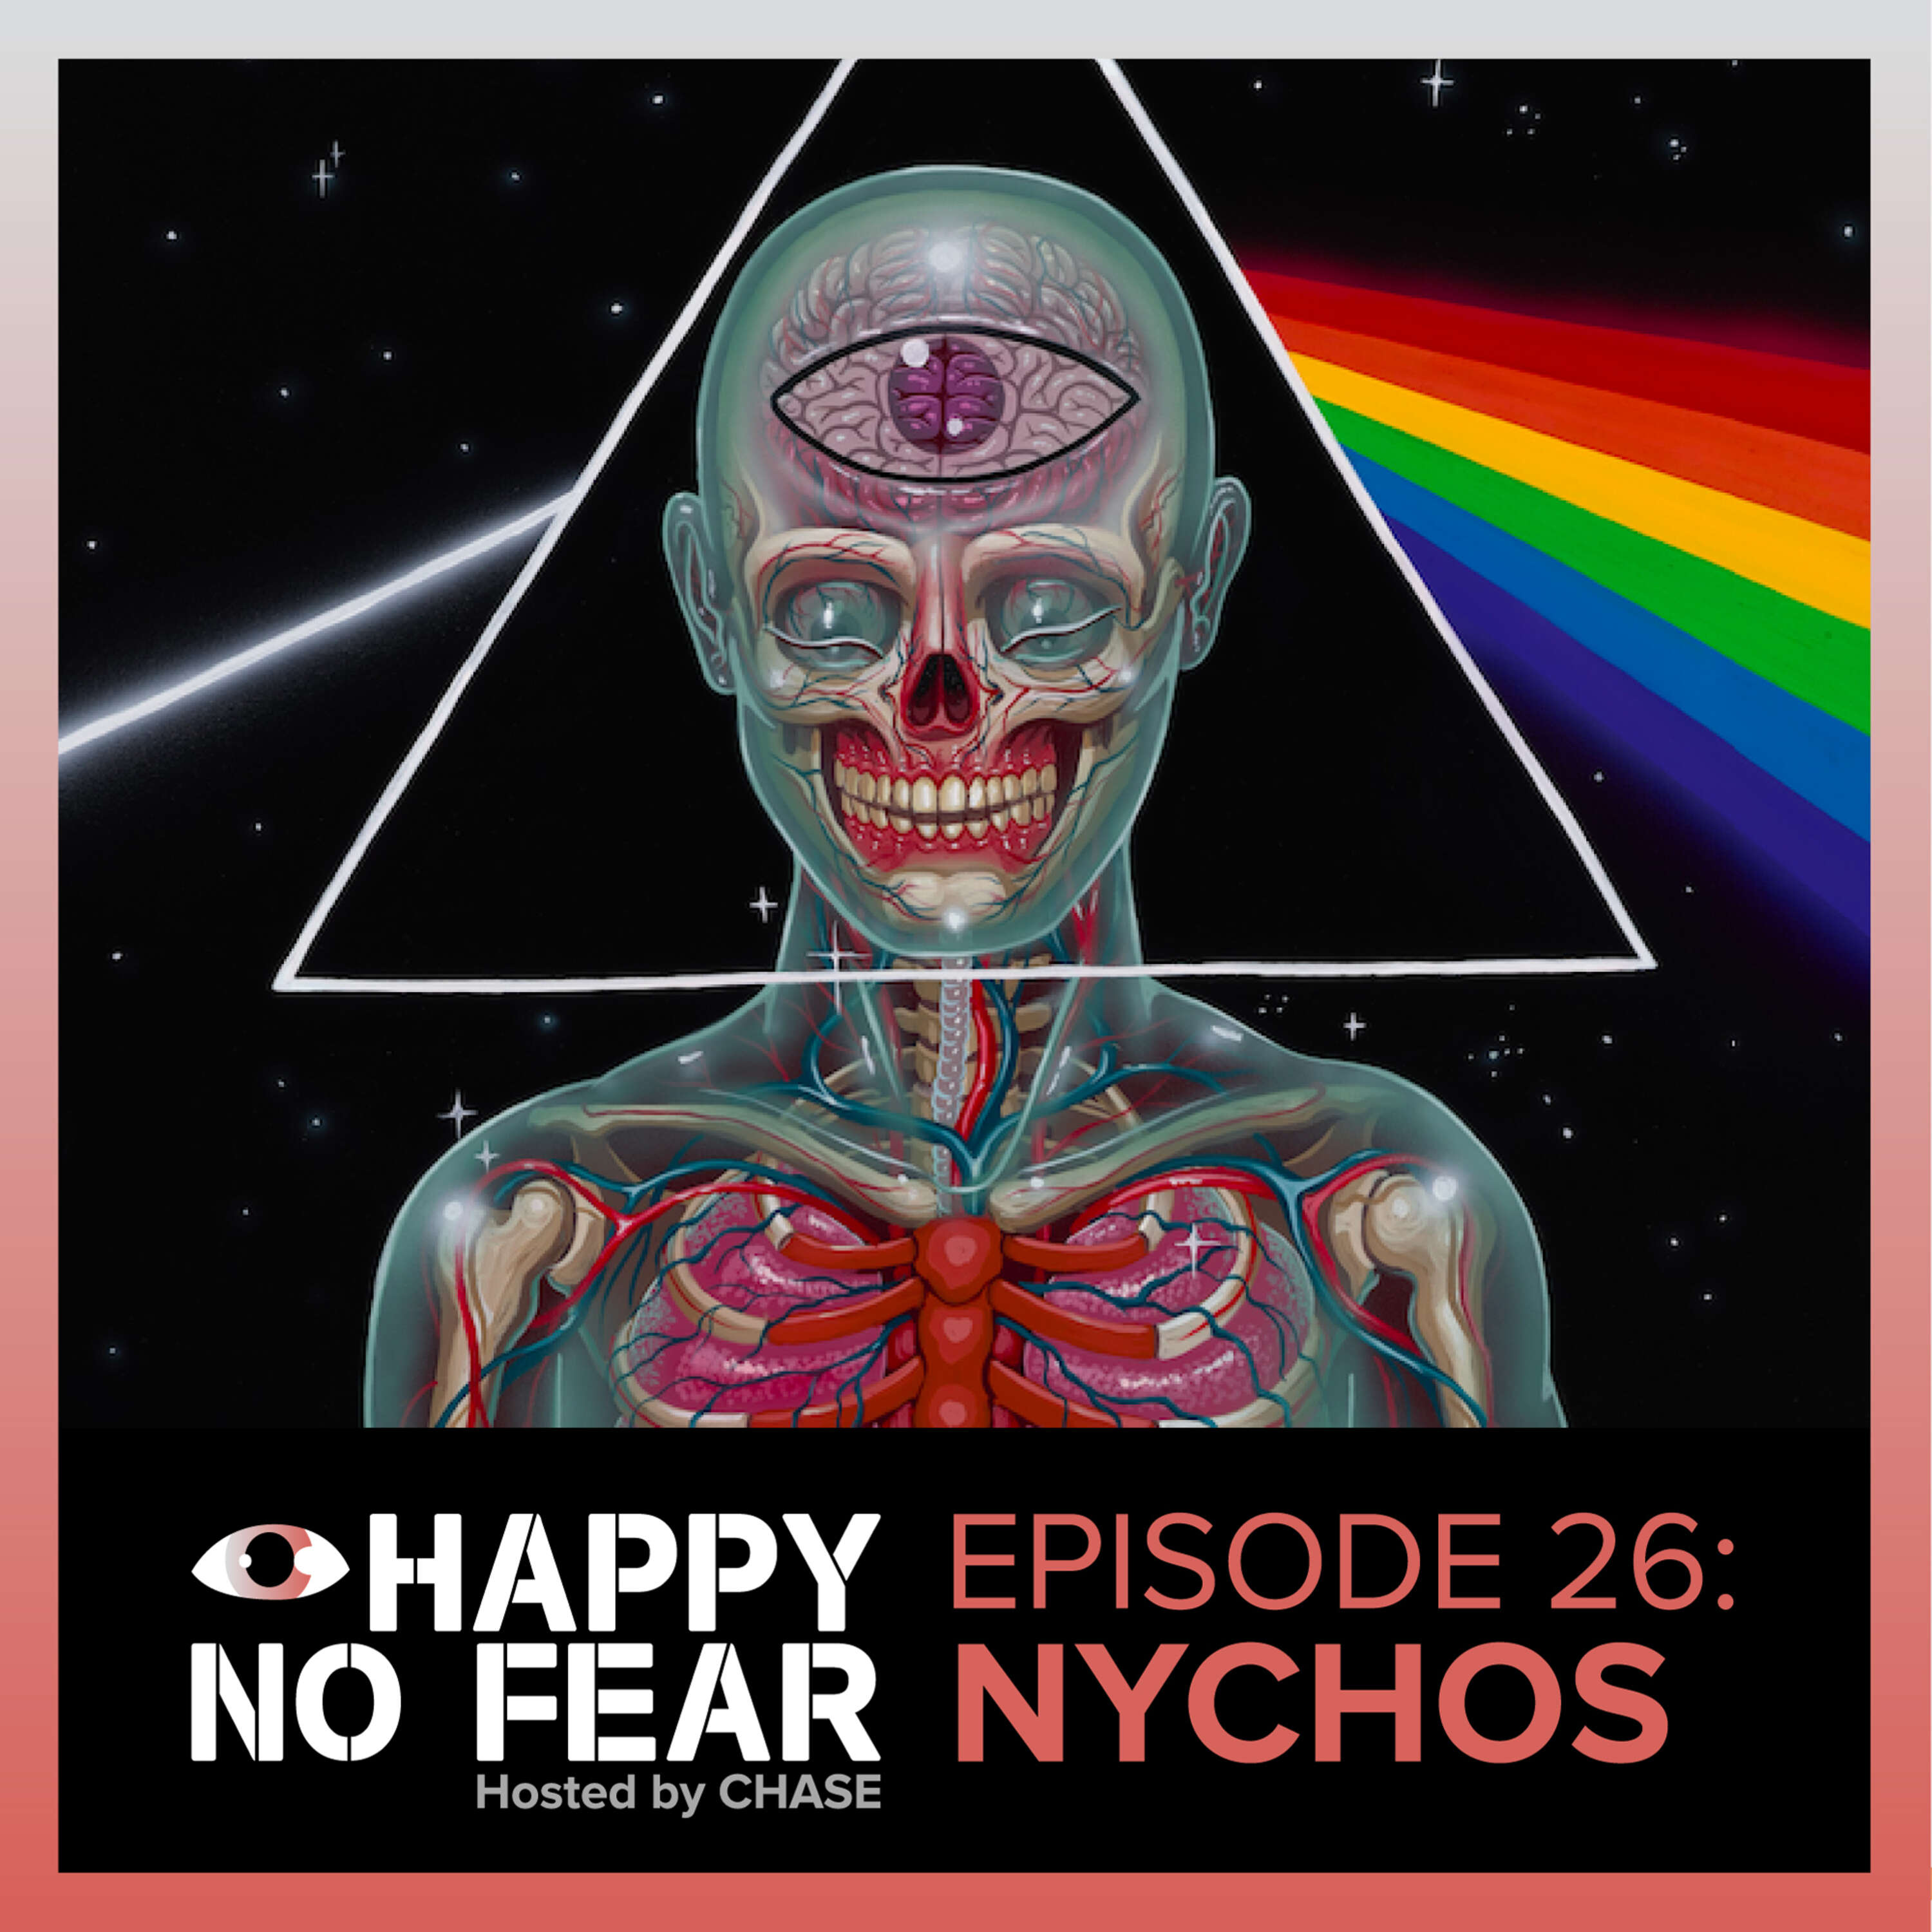 Episode 26: Nychos